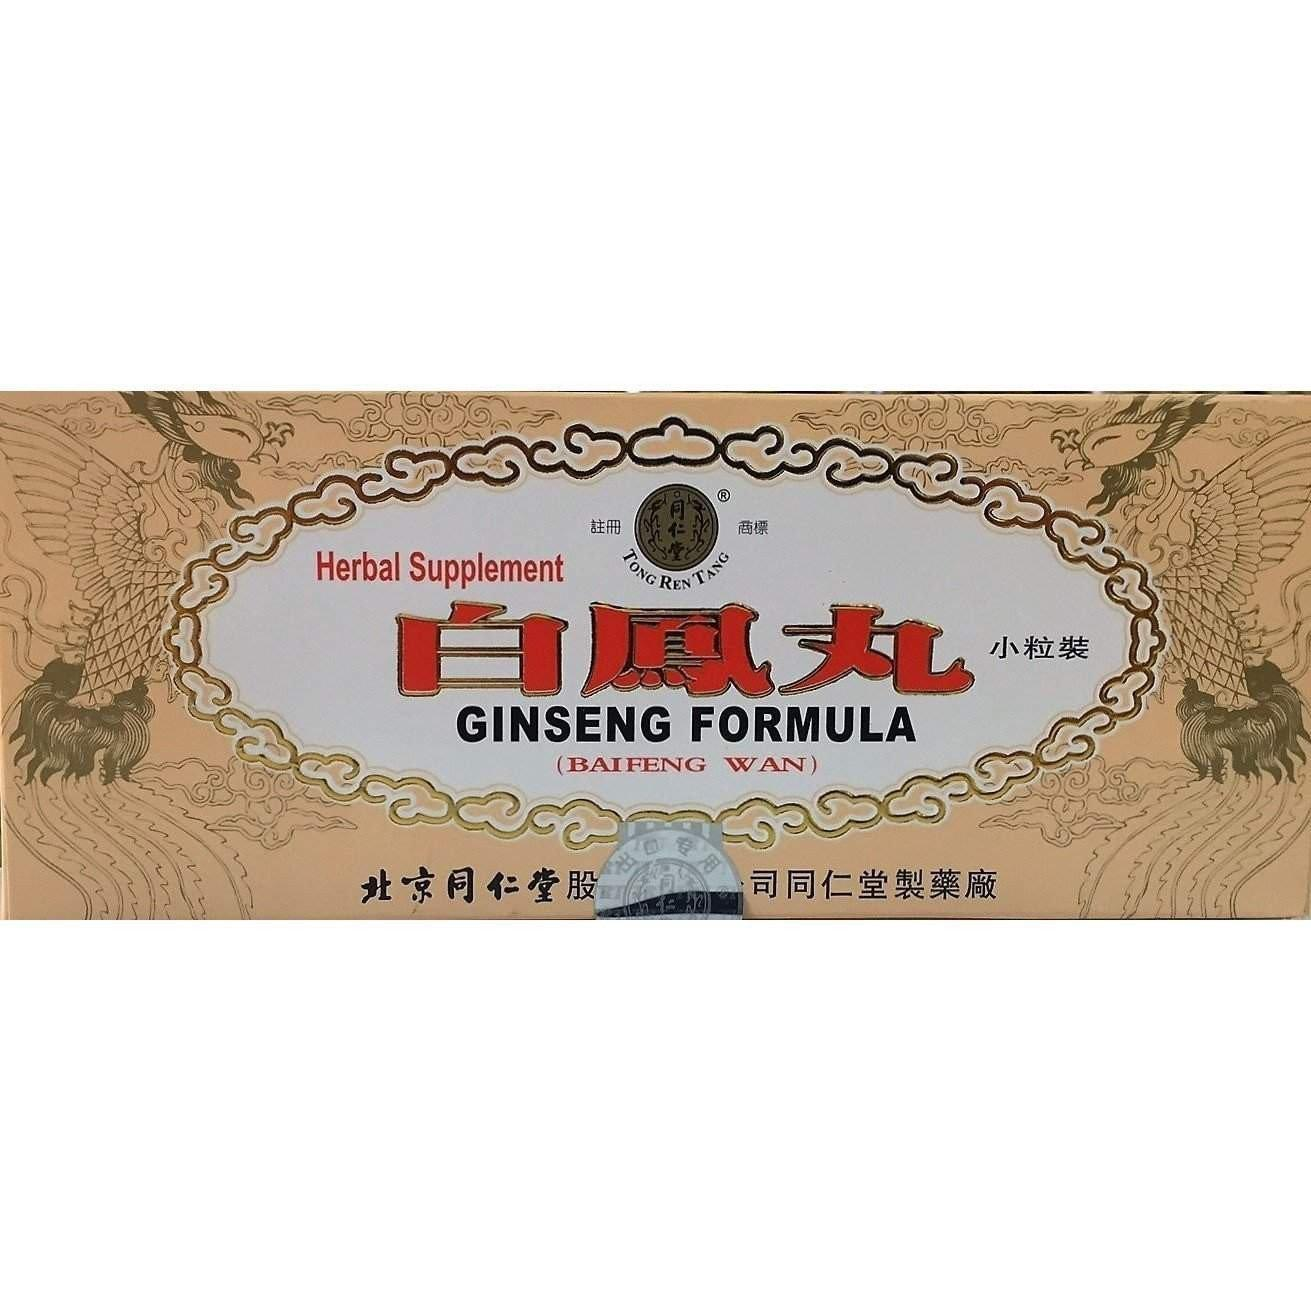 Tong Ren Tang Bai Feng Wan, Helps Regulate Menstruation (10 Pills)-Buy at New Green Nutrition